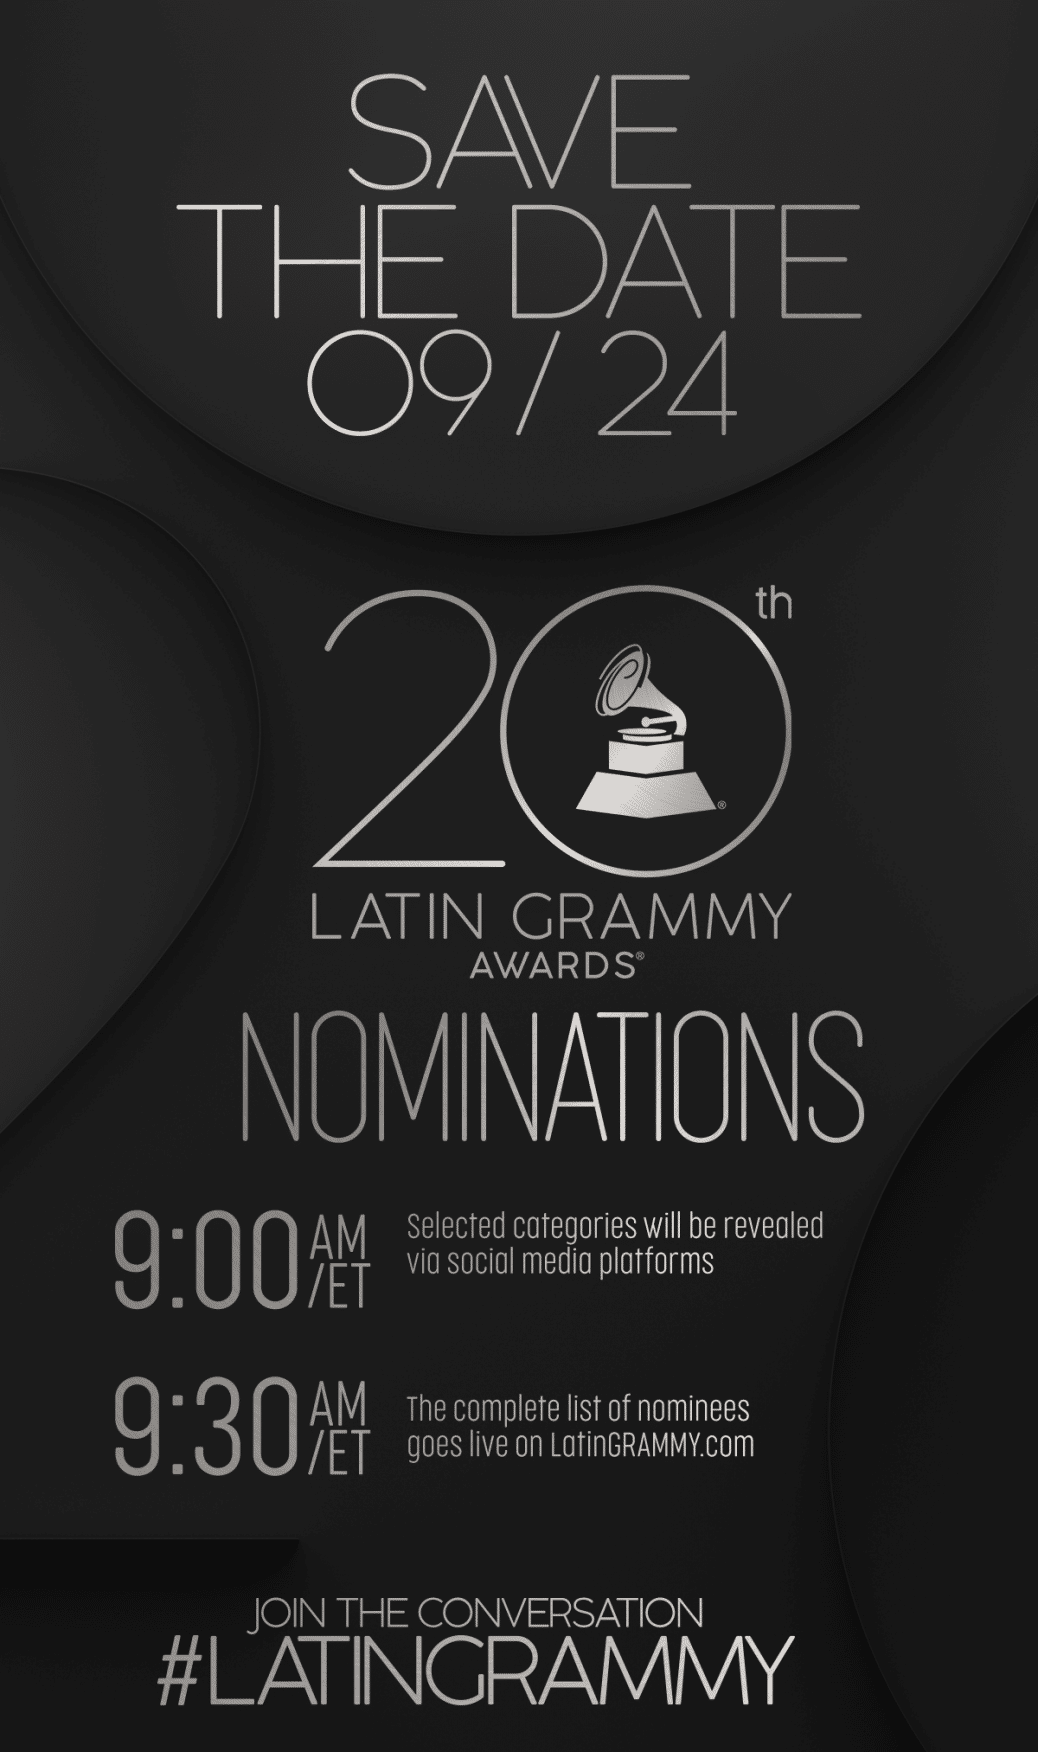 Latin Grammy Awards Nominations poster